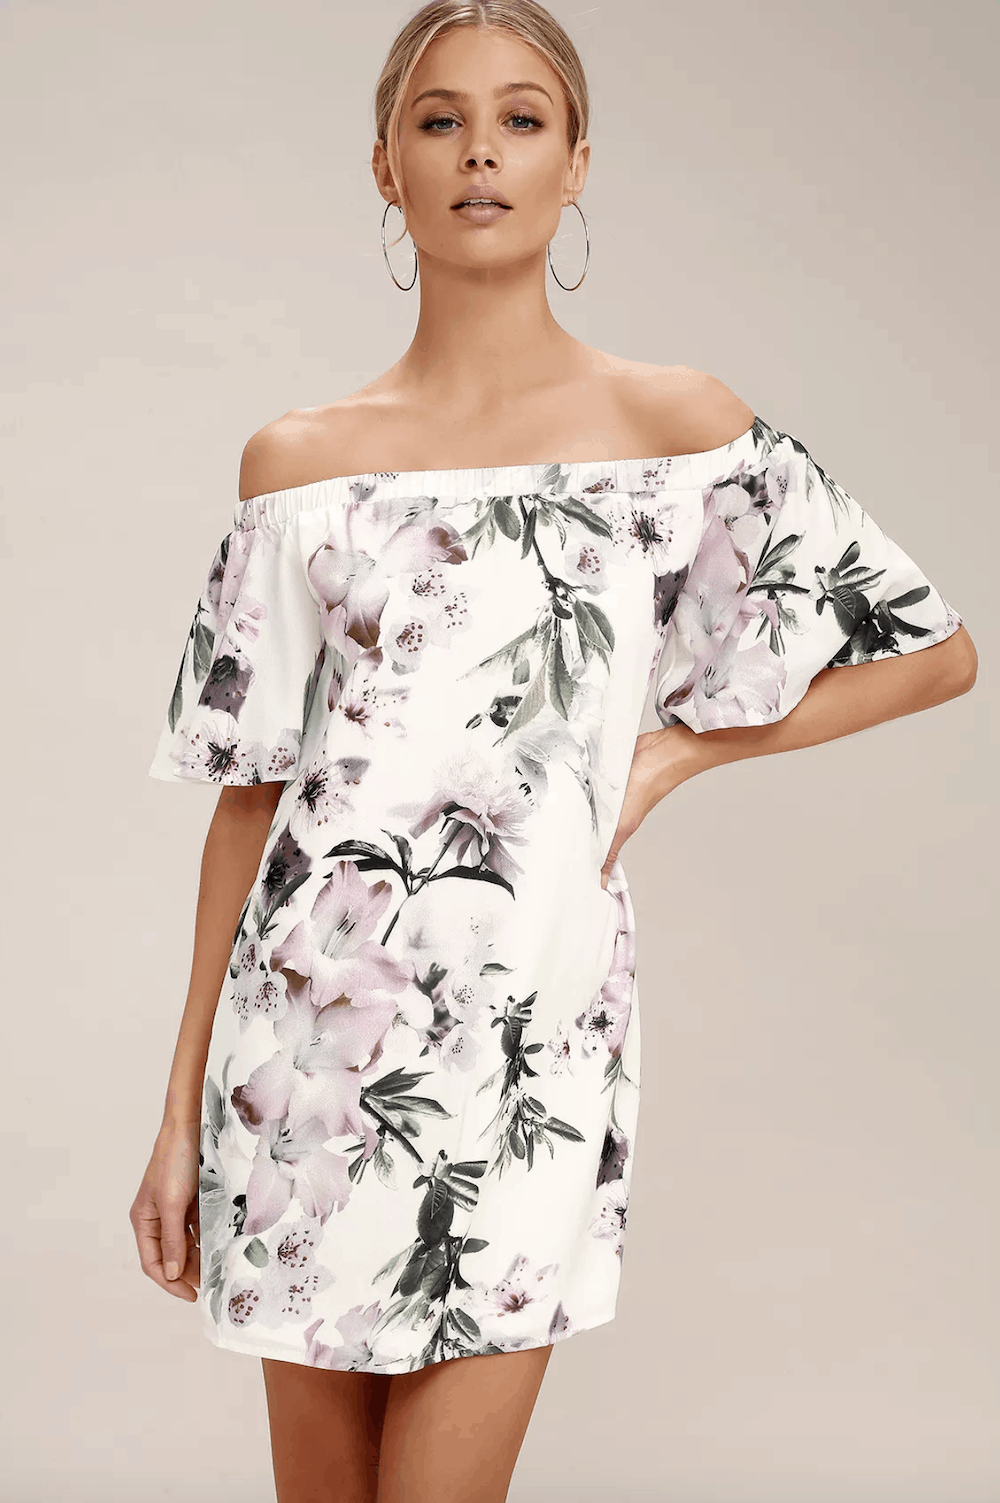 Summer Honeymoon Outfits for Her Ivory Floral Print Off The Shoulder Shift Dress